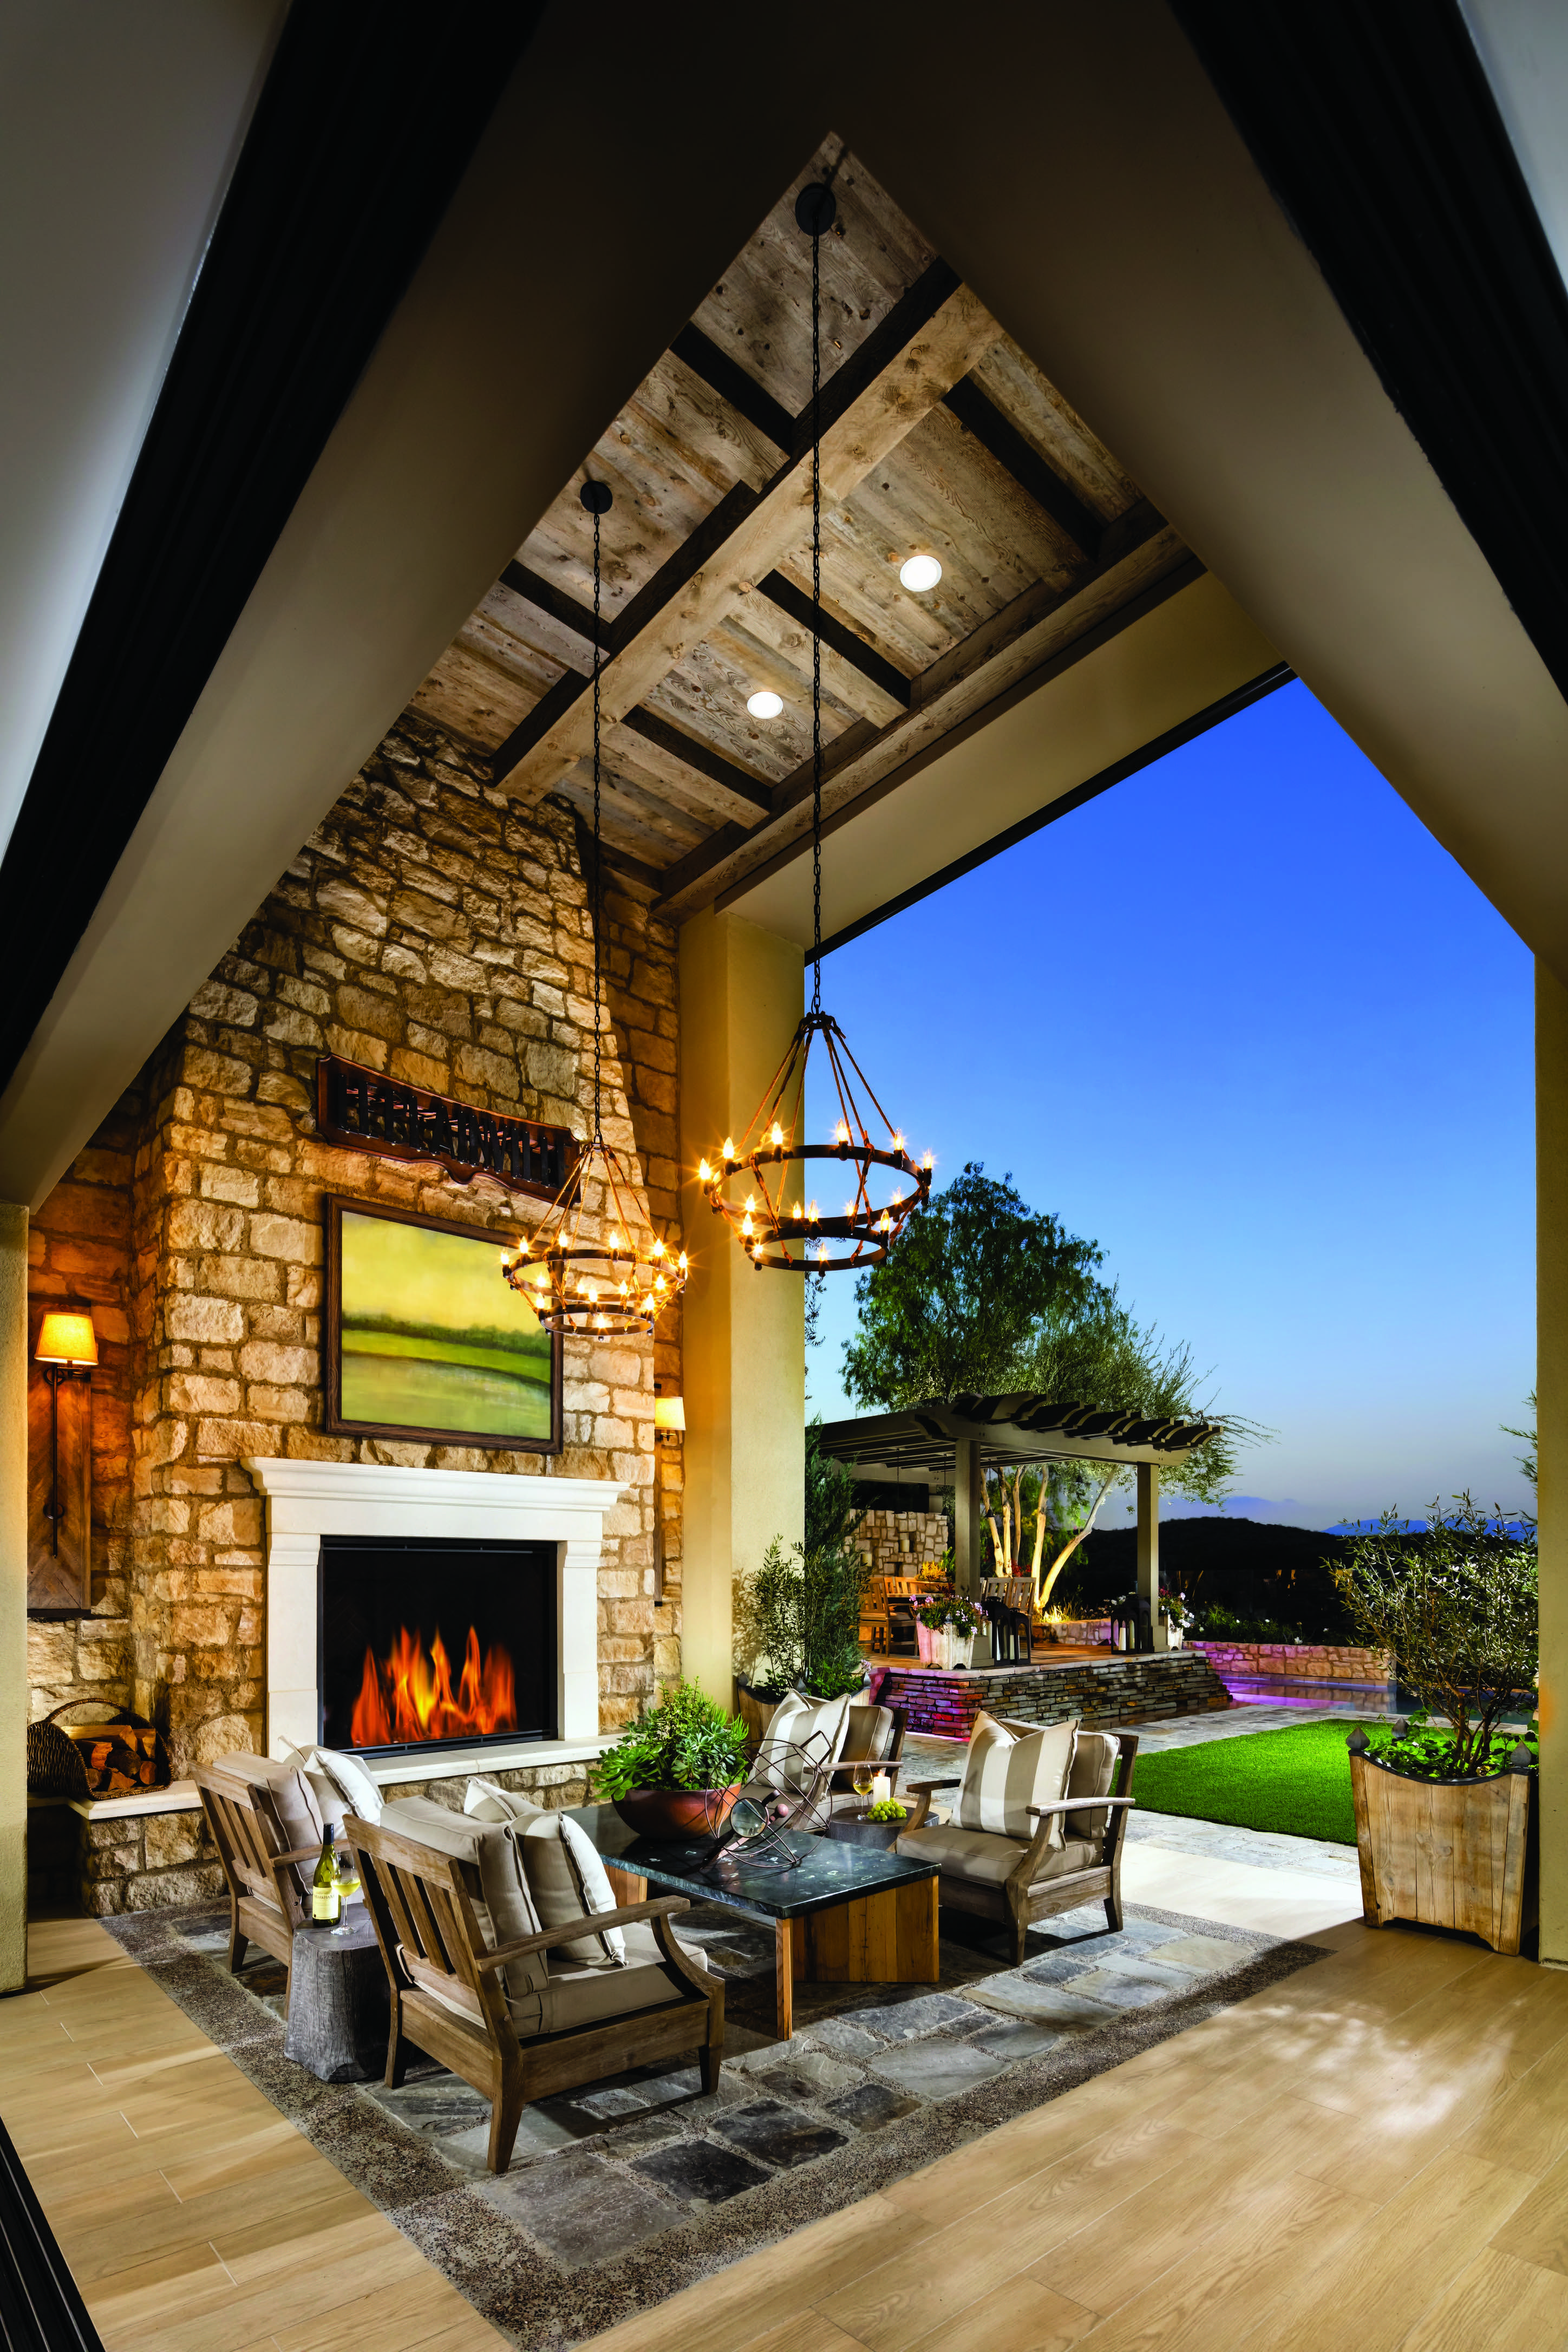 Enjoy The Sunset And Soft Rolling Hills From The Privacy Of Your Home At Toll Brothers At Hi Indoor Outdoor Living Outdoor Living Design Outdoor Kitchen Design